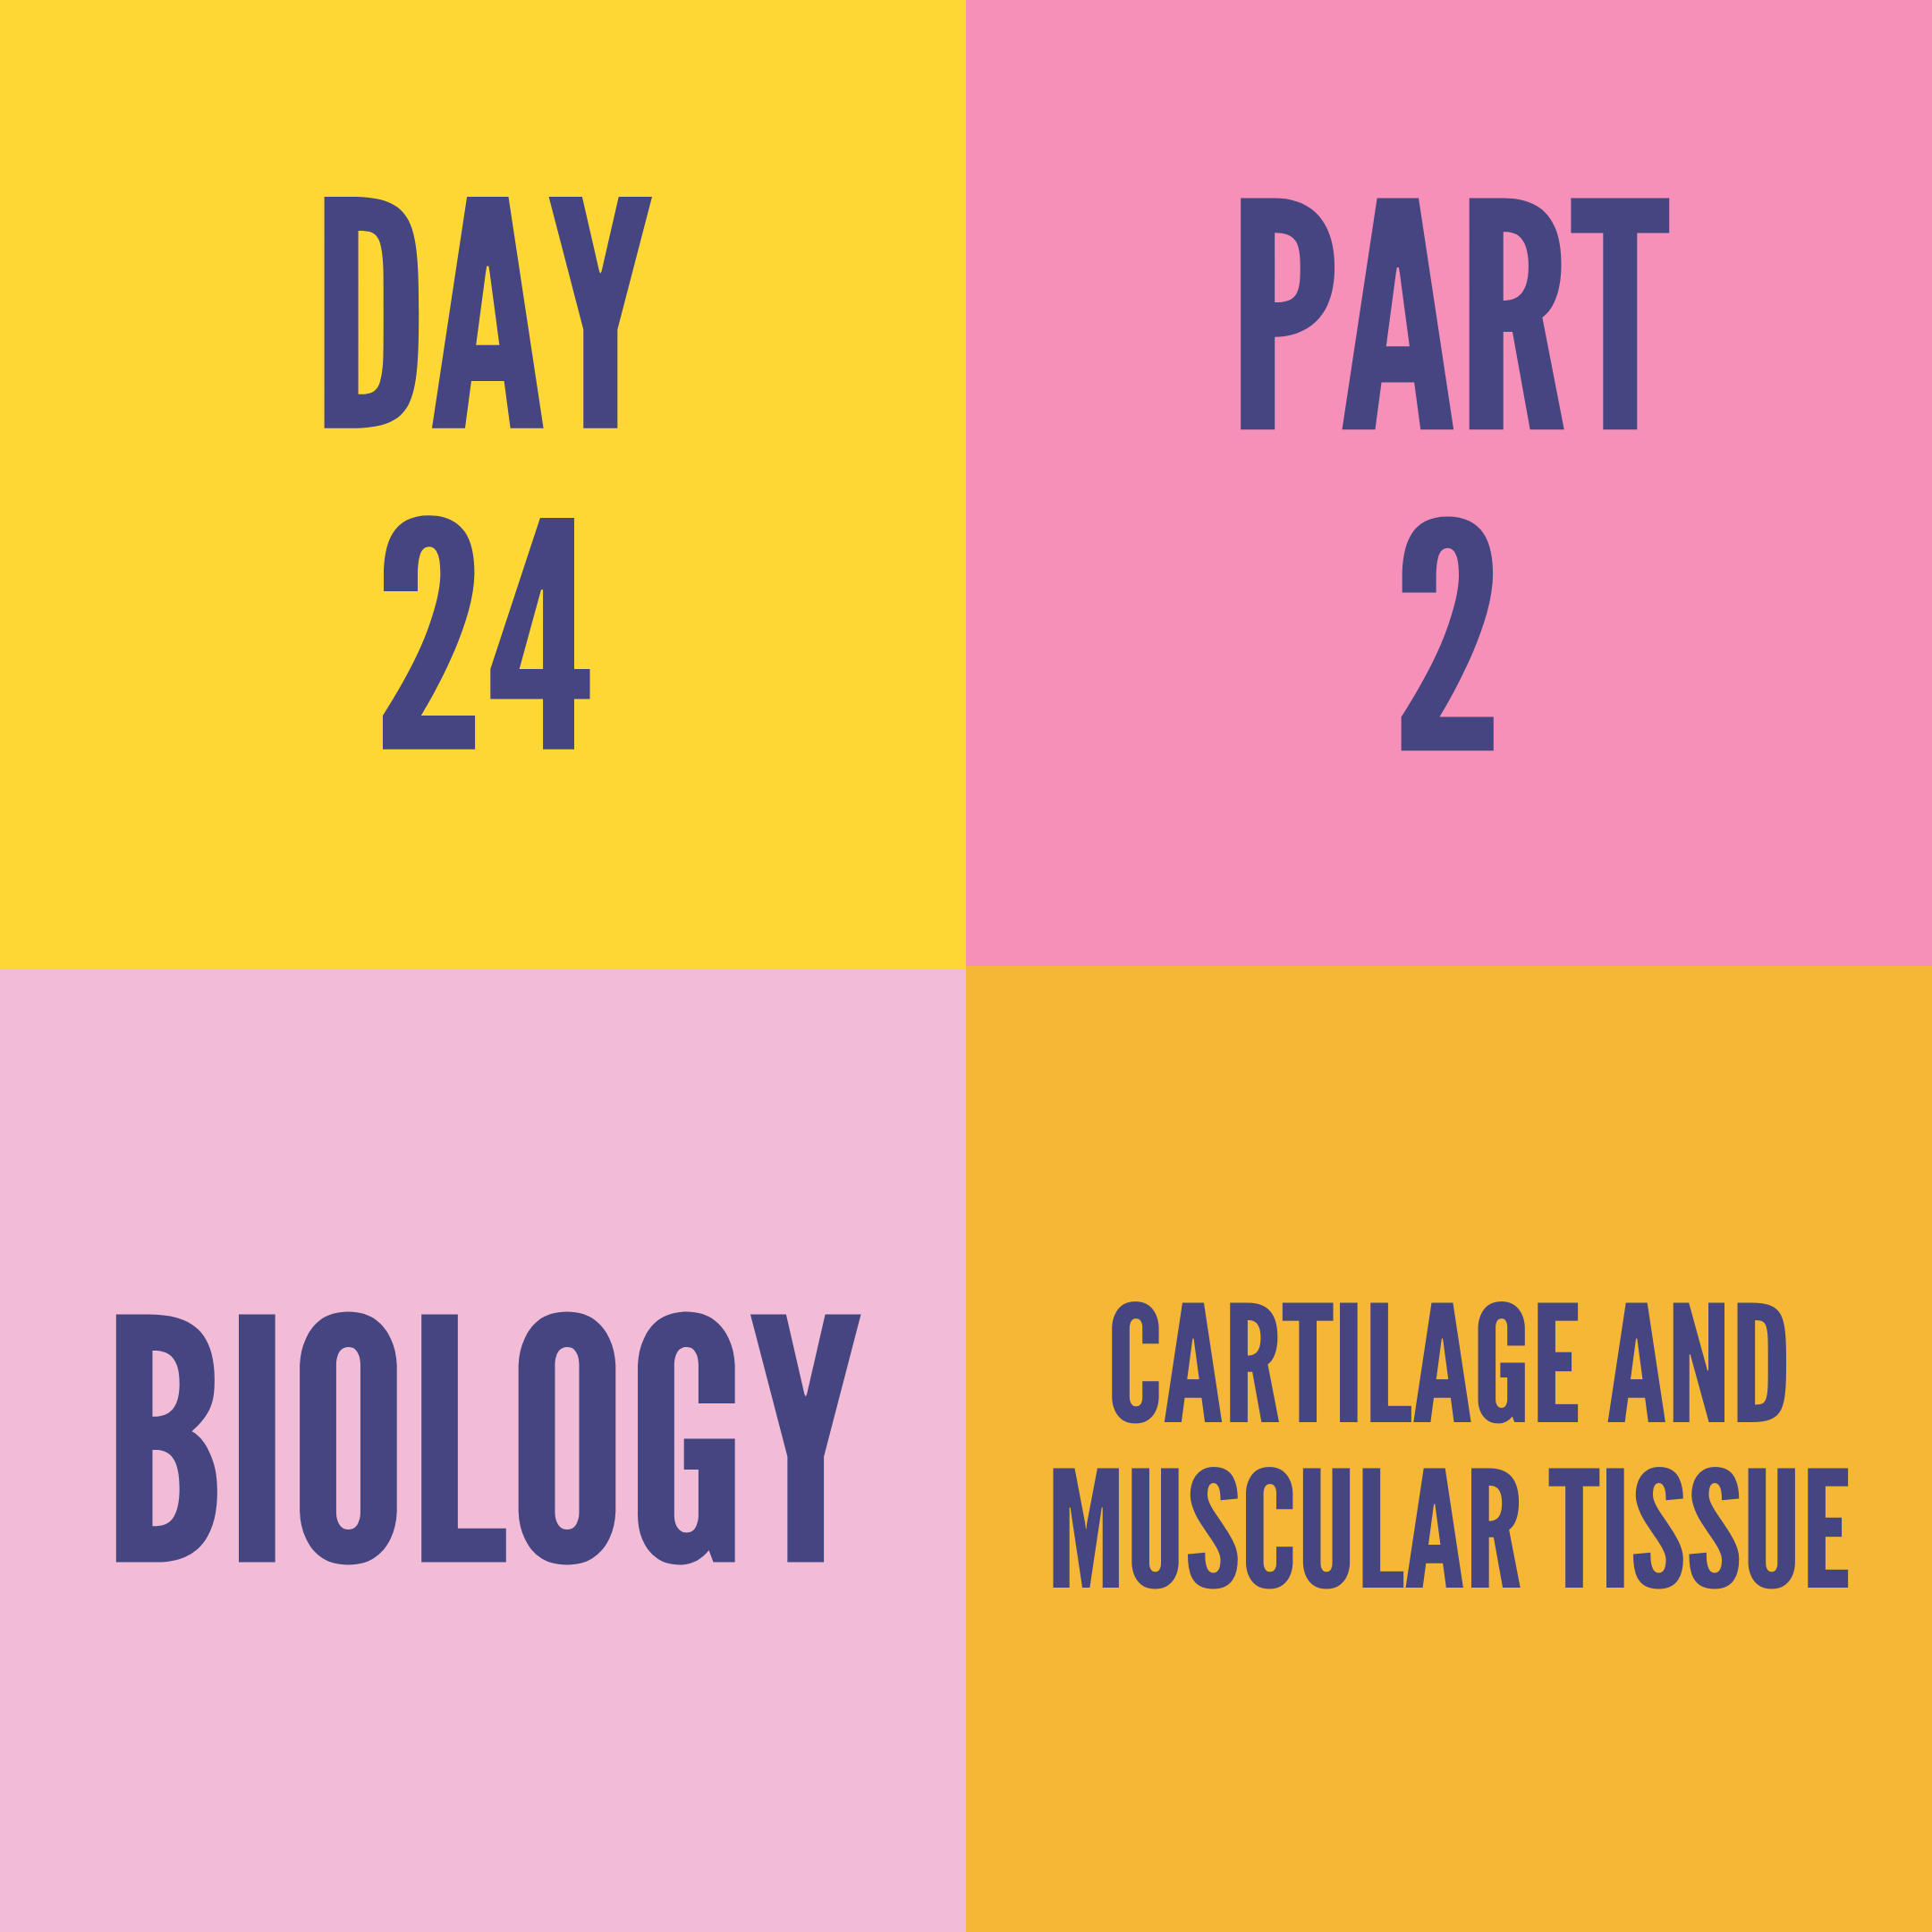 DAY-24 PART-2 CARTILAGE AND MUSCULAR TISSUE